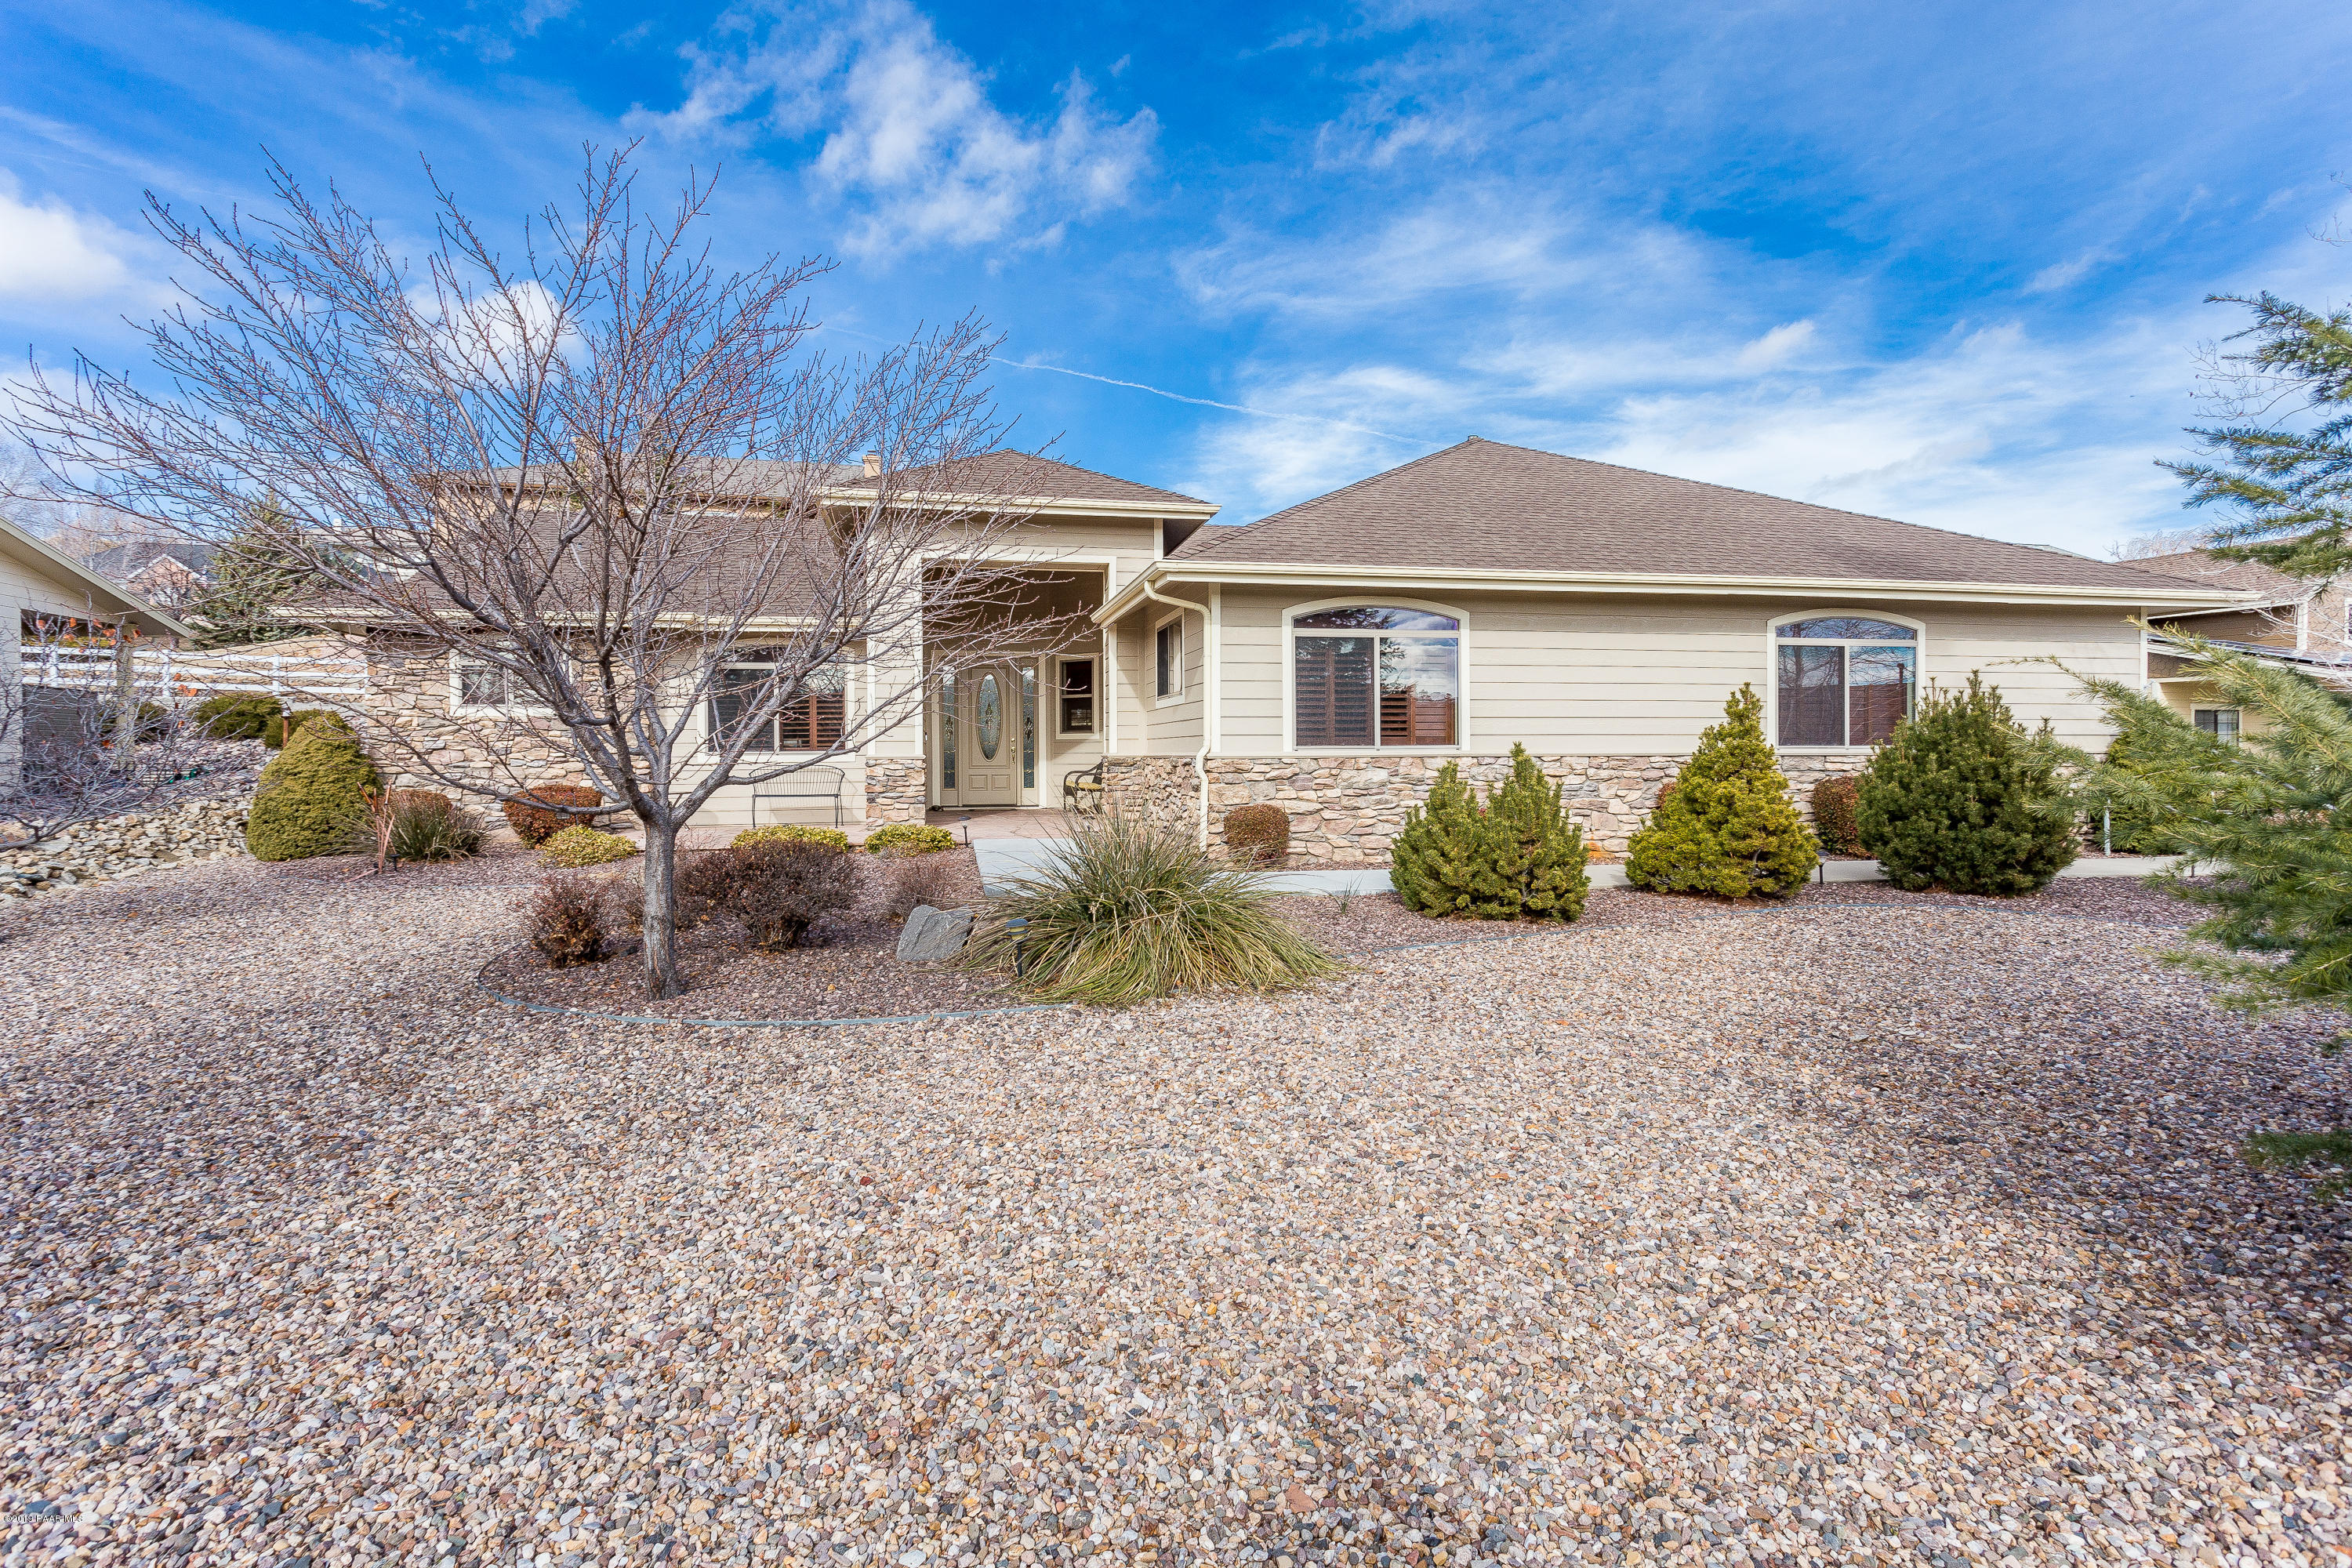 Photo of 2559 Golden Bear, Prescott, AZ 86301